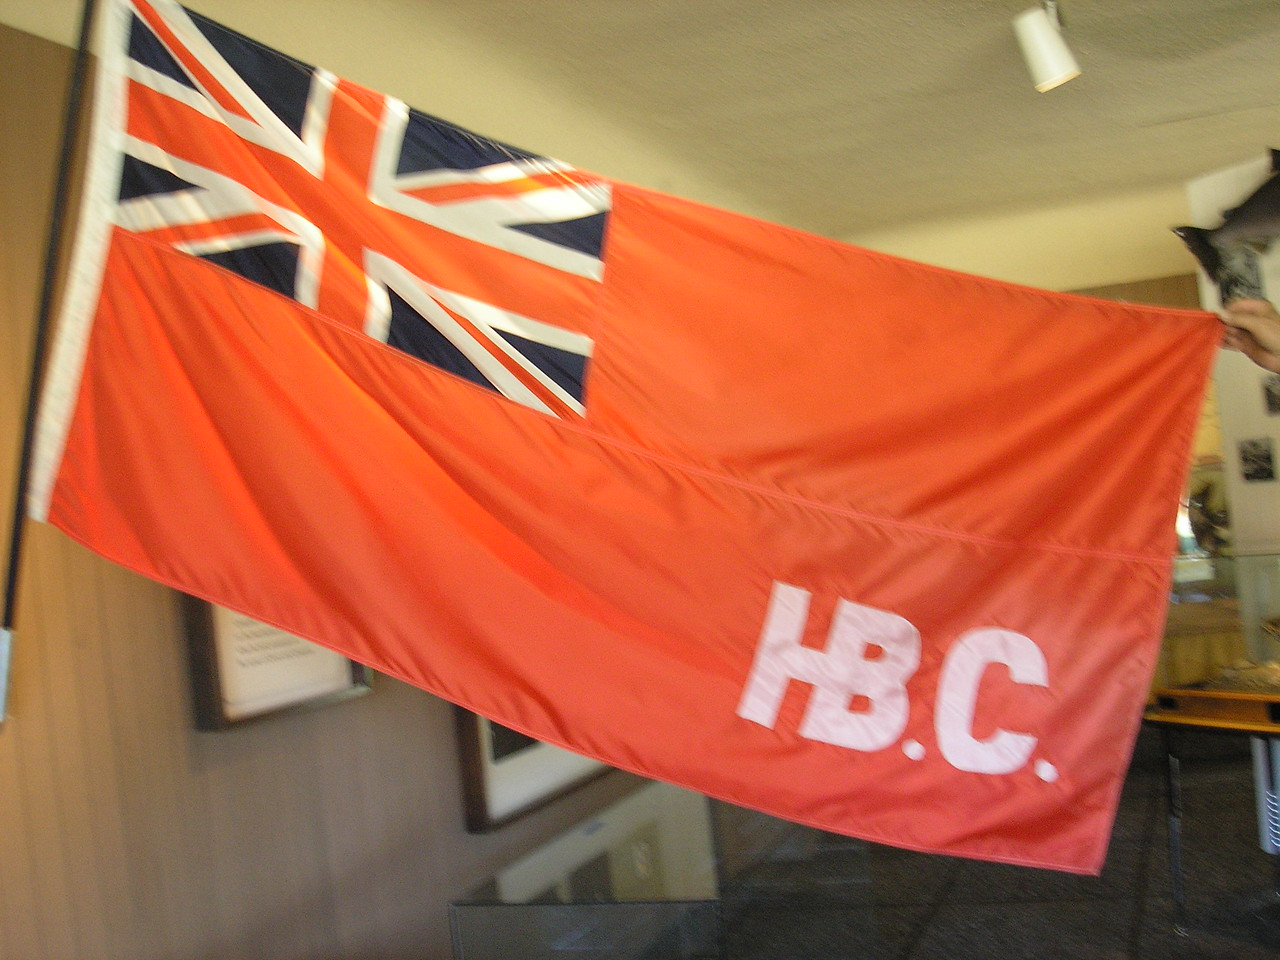 This is a photo from inside the Spokane House display.  Hudson Bay Company had rhis flag over the compound.  Located at the confluance of the Spokane and Little Spokane Rivers.